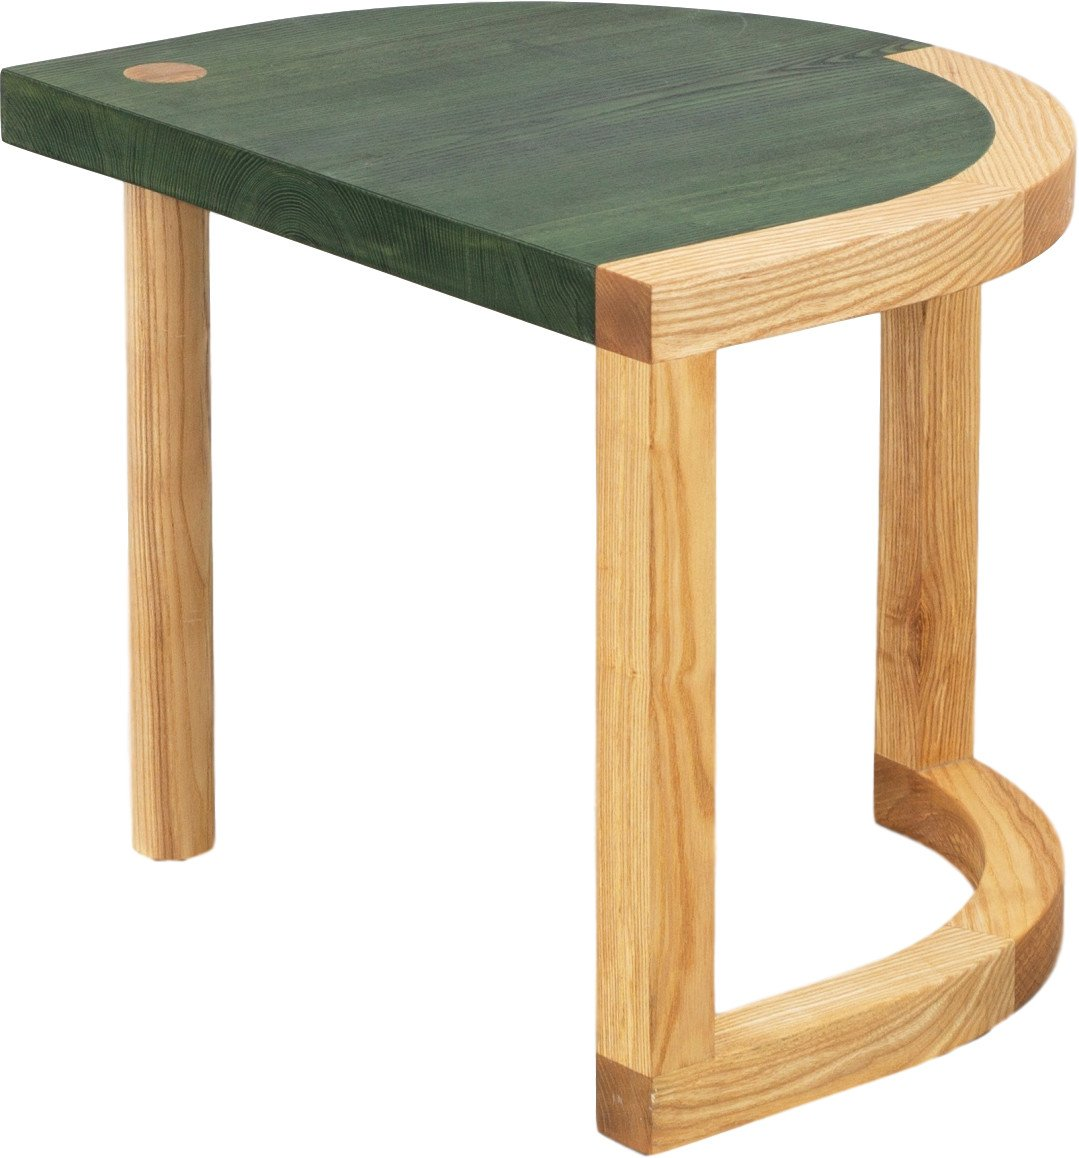 TRN 4 Side Table Blue, Pani Jurek